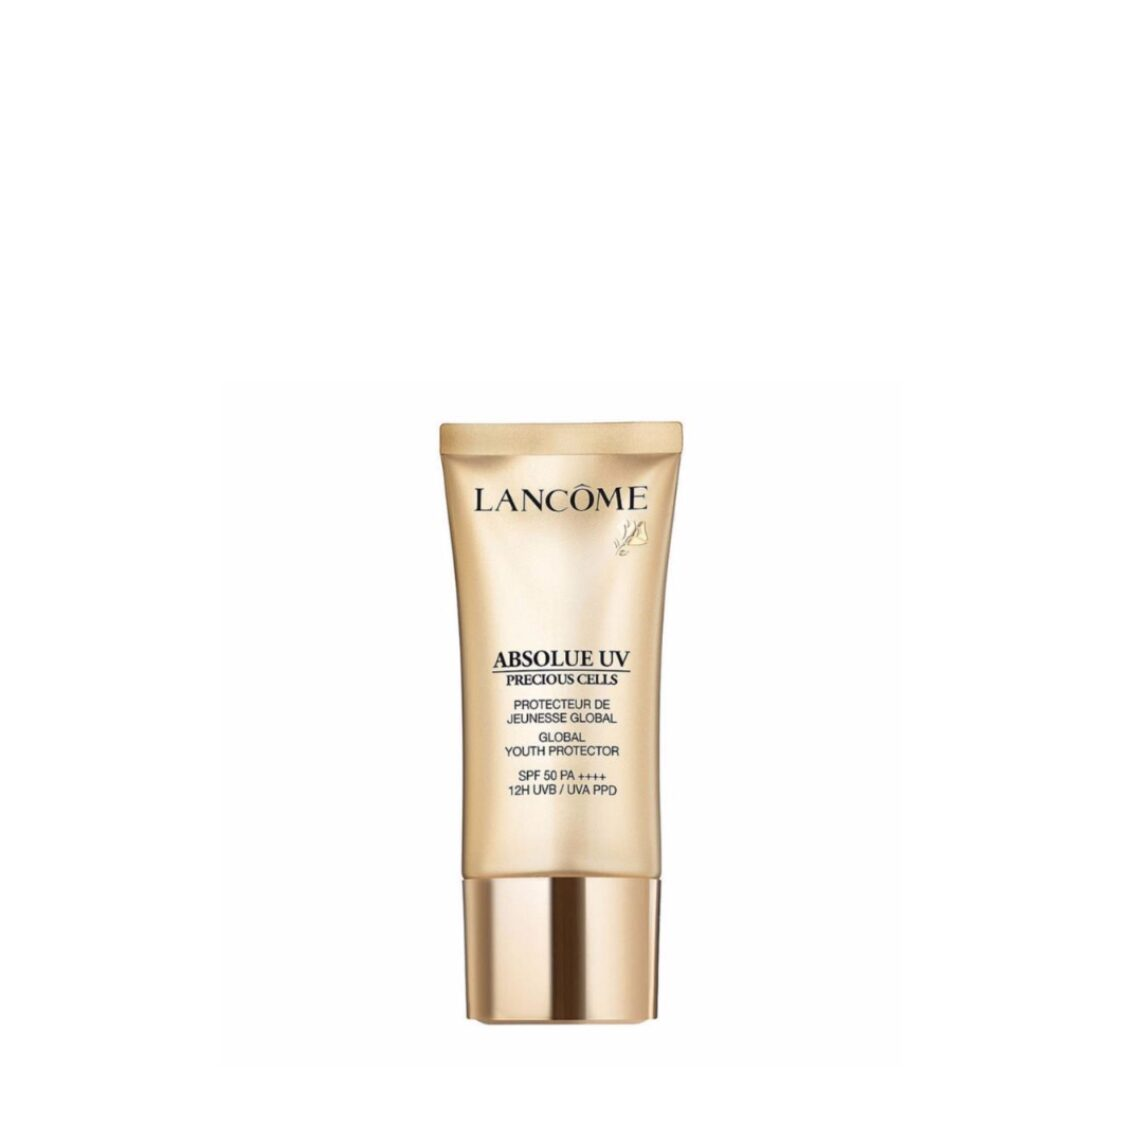 Lancome Absolue UV Precious Cells 30ml